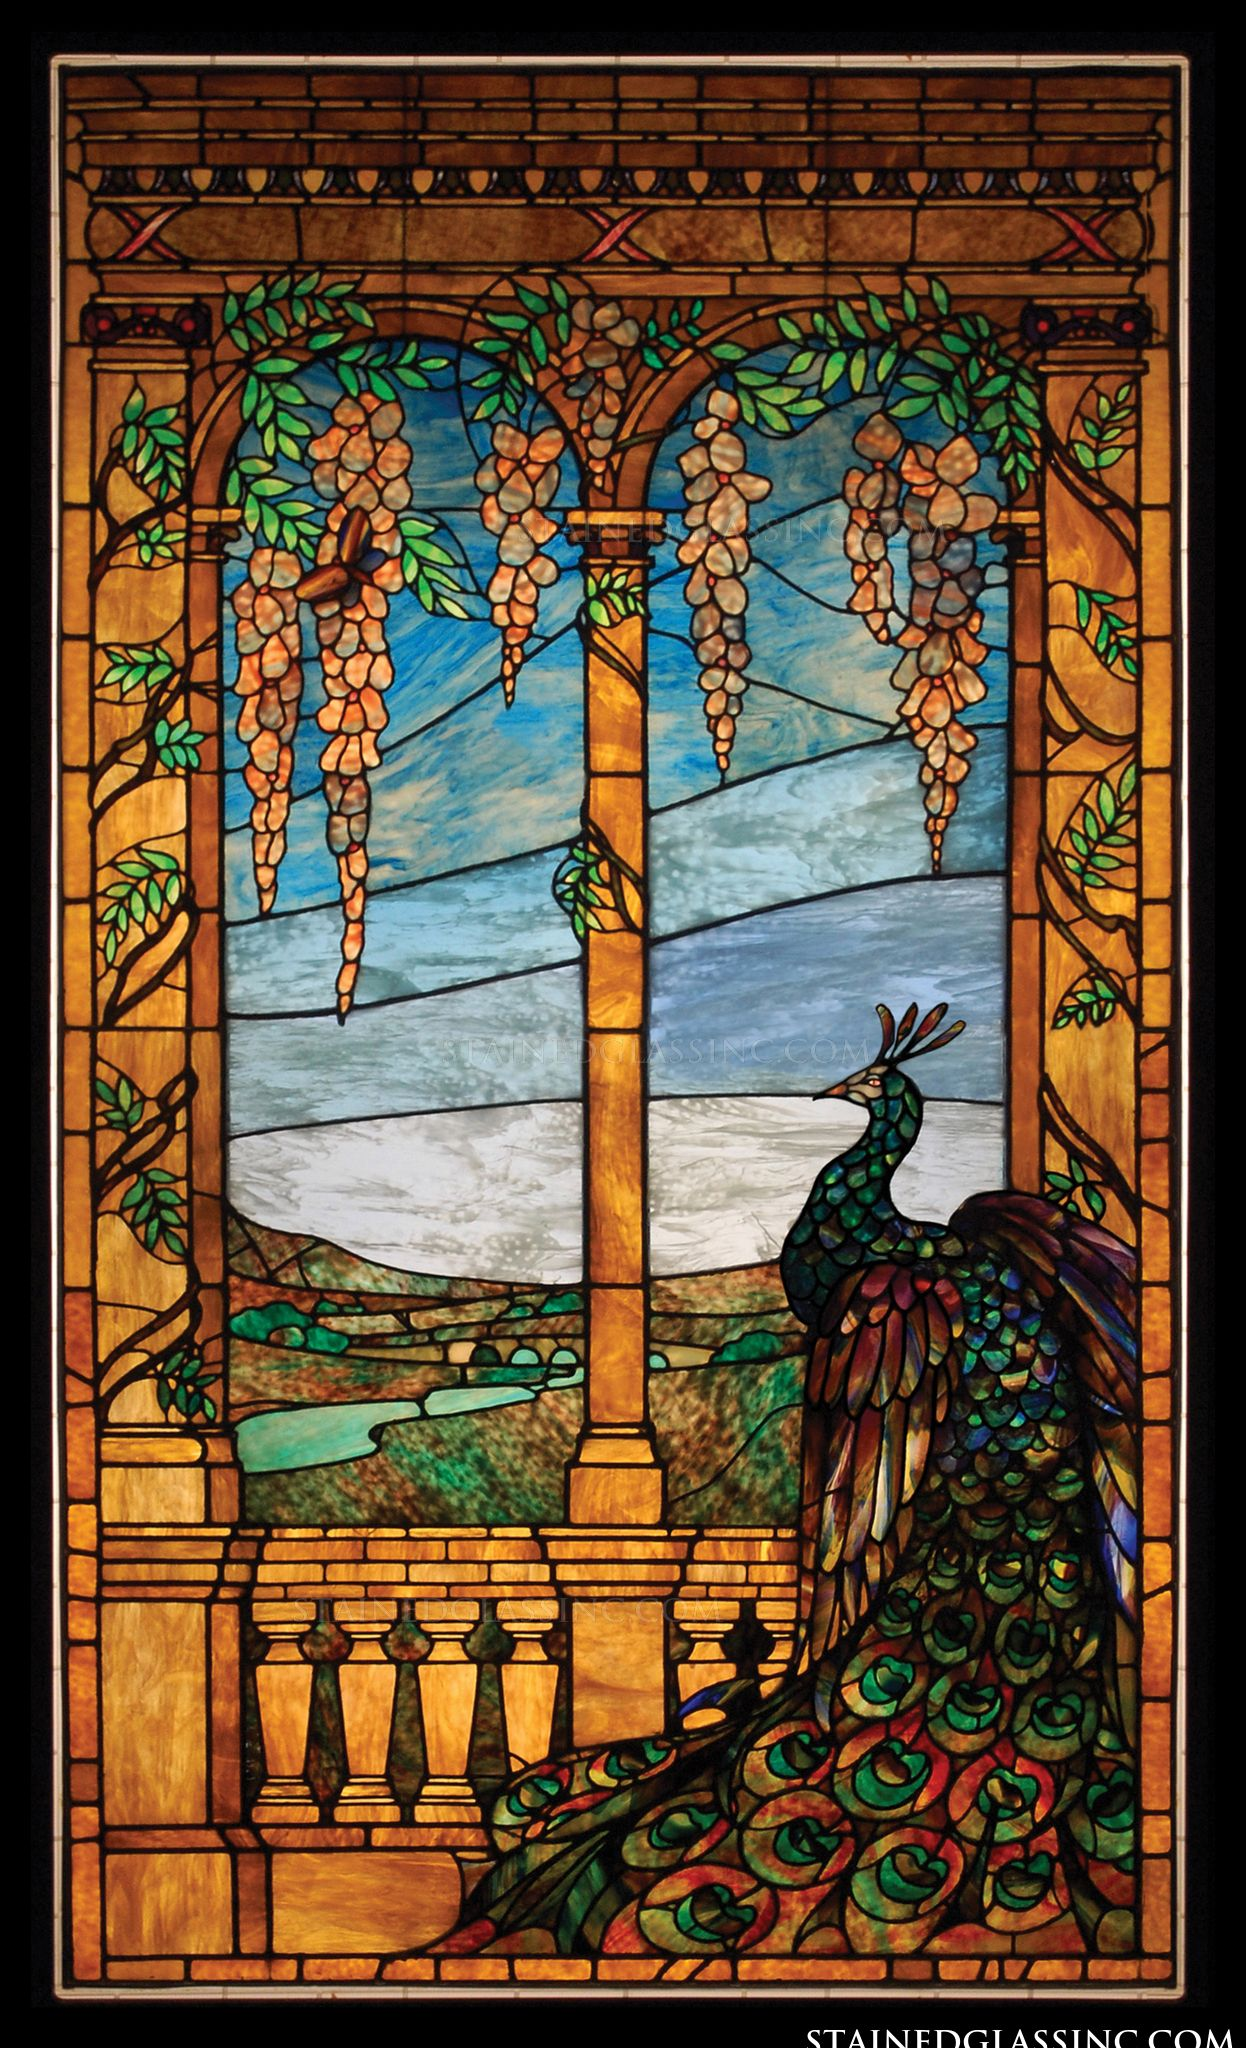 An Arched Stained Glass Window Featuring A Peacock Panel # 2887